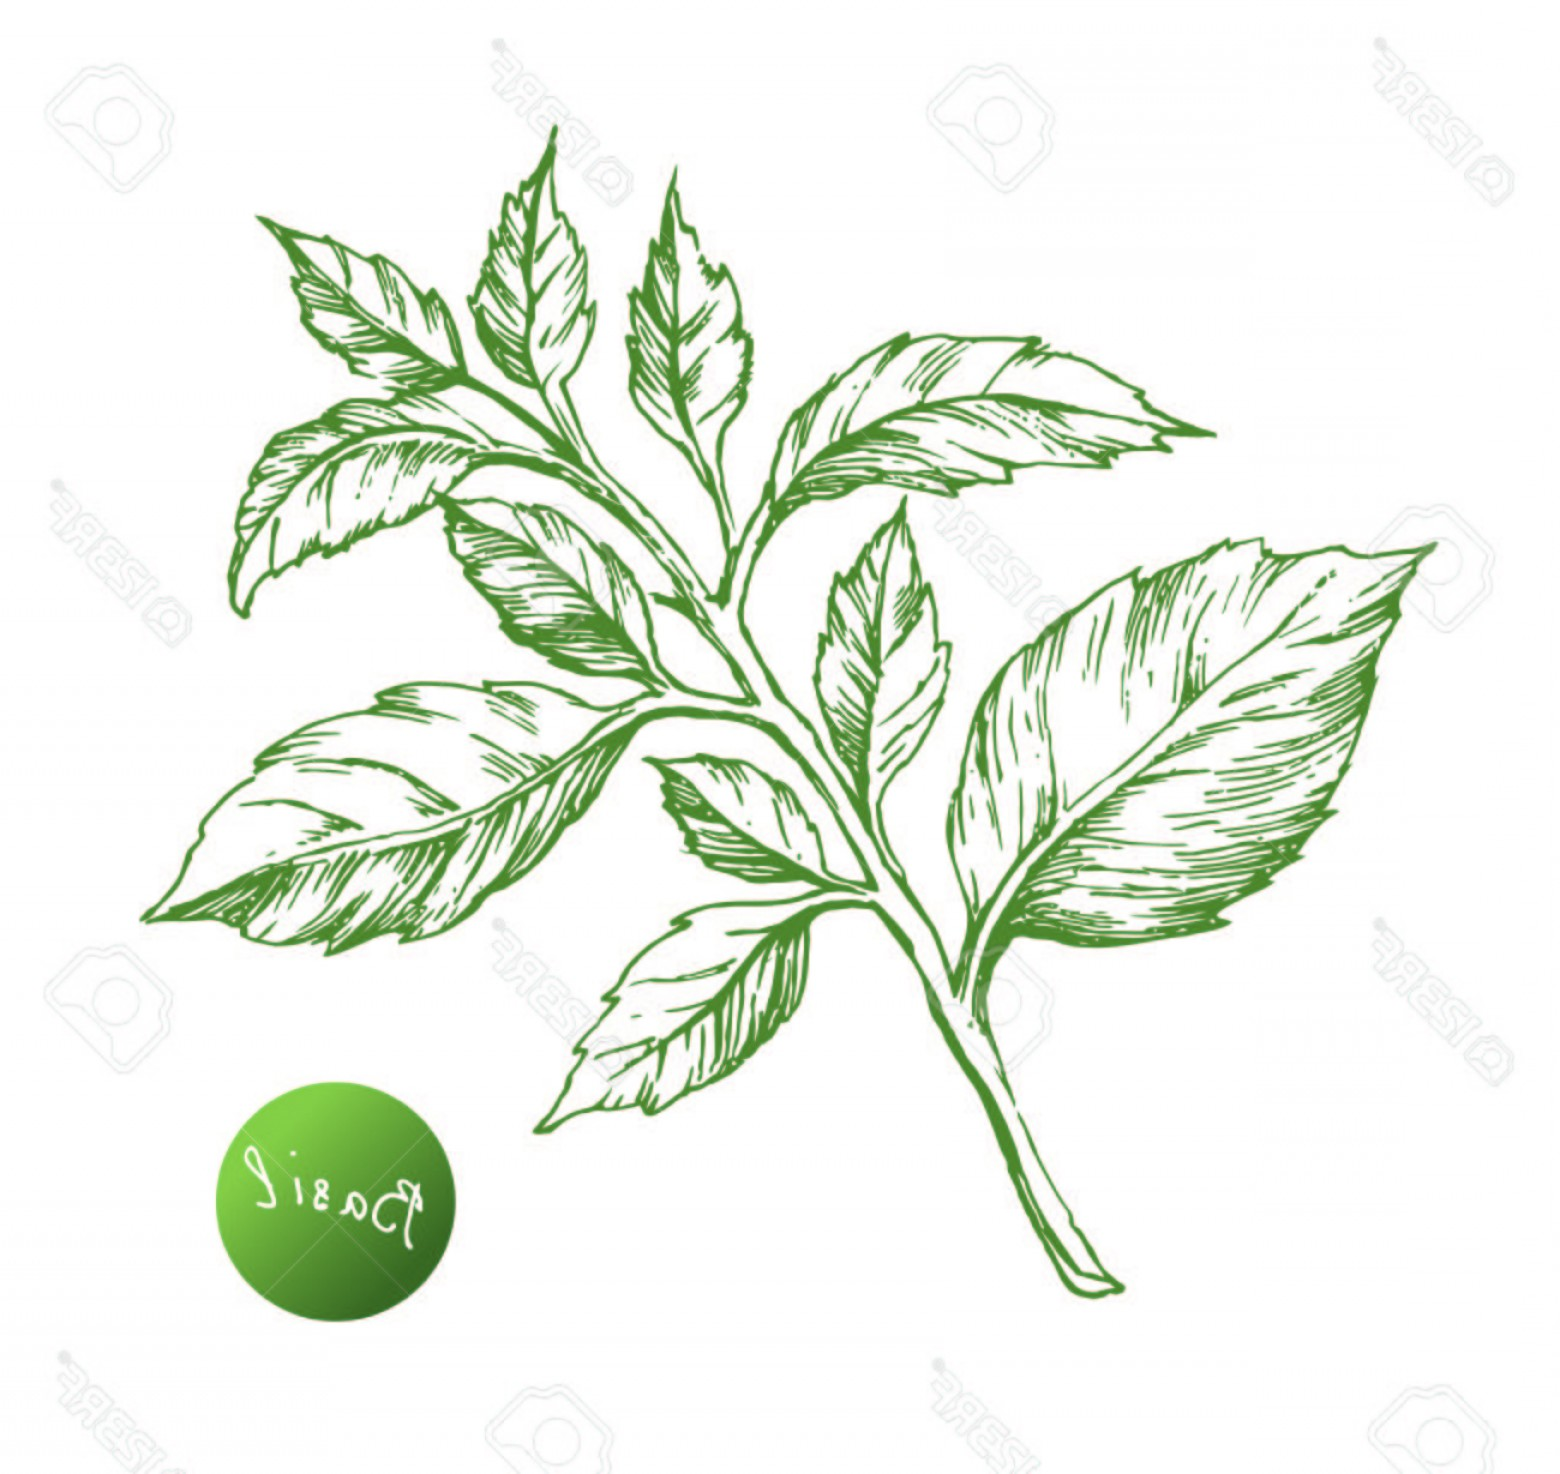 Basil Vector: Photostock Vector Basil Vector Drawing Isolated Basil Leaves Herbal Engraved Style Illustration Cooking Spicy Ingredie